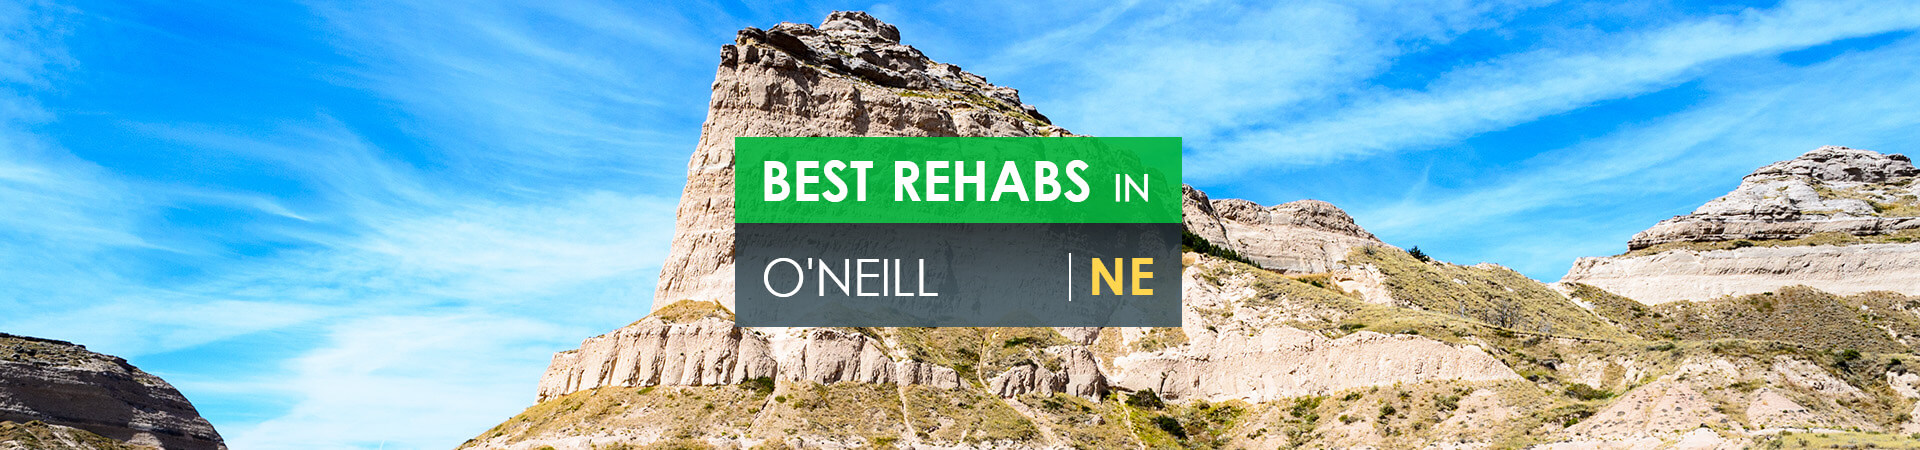 Best rehabs in O'neill, NE